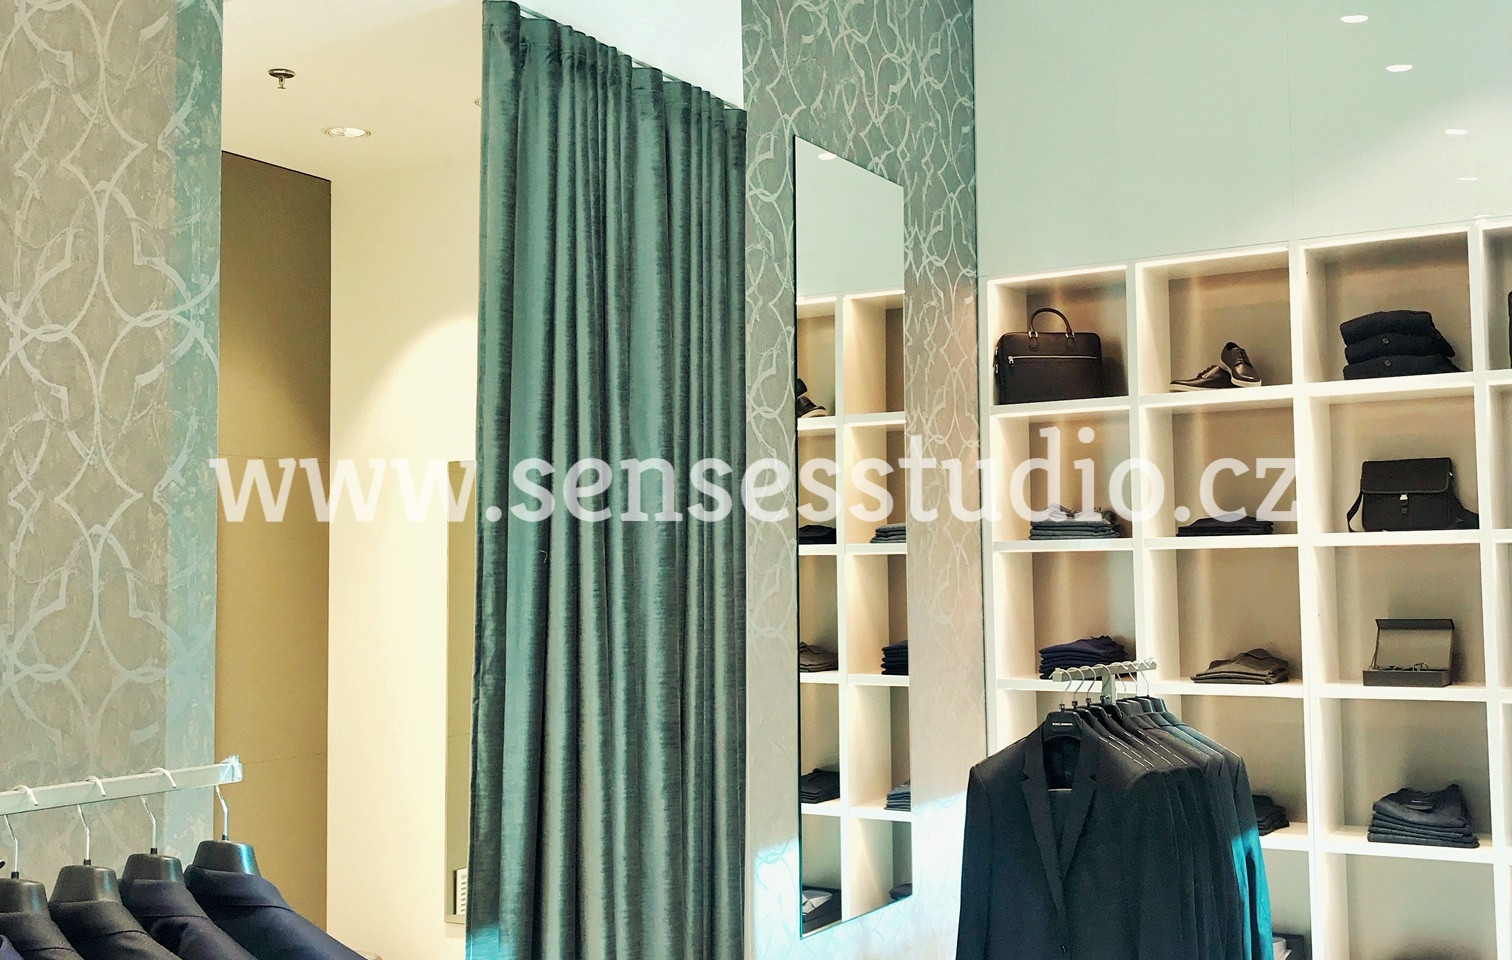 PRAGUE OUTLET - SENSES STUDIO